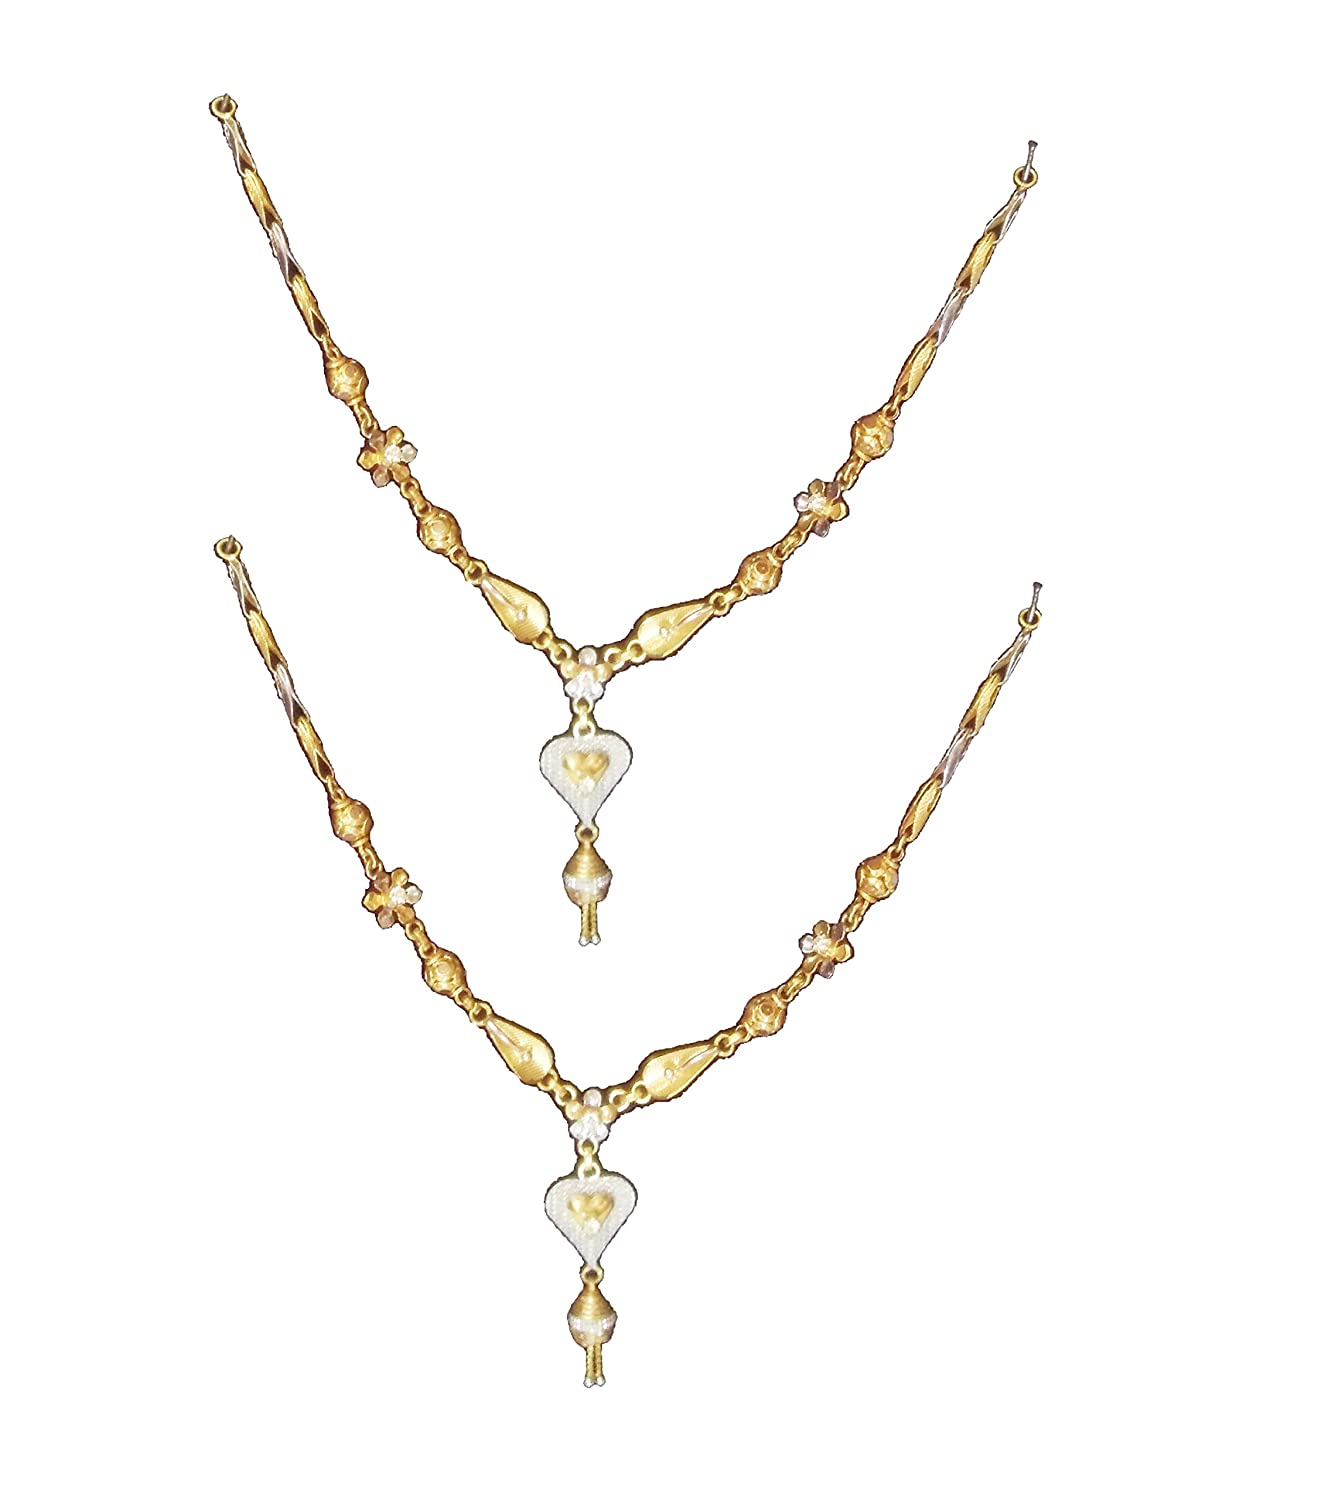 Buy Ravi jewellers pure 916 kdm gold necklace for Women, Size-13.5 ...